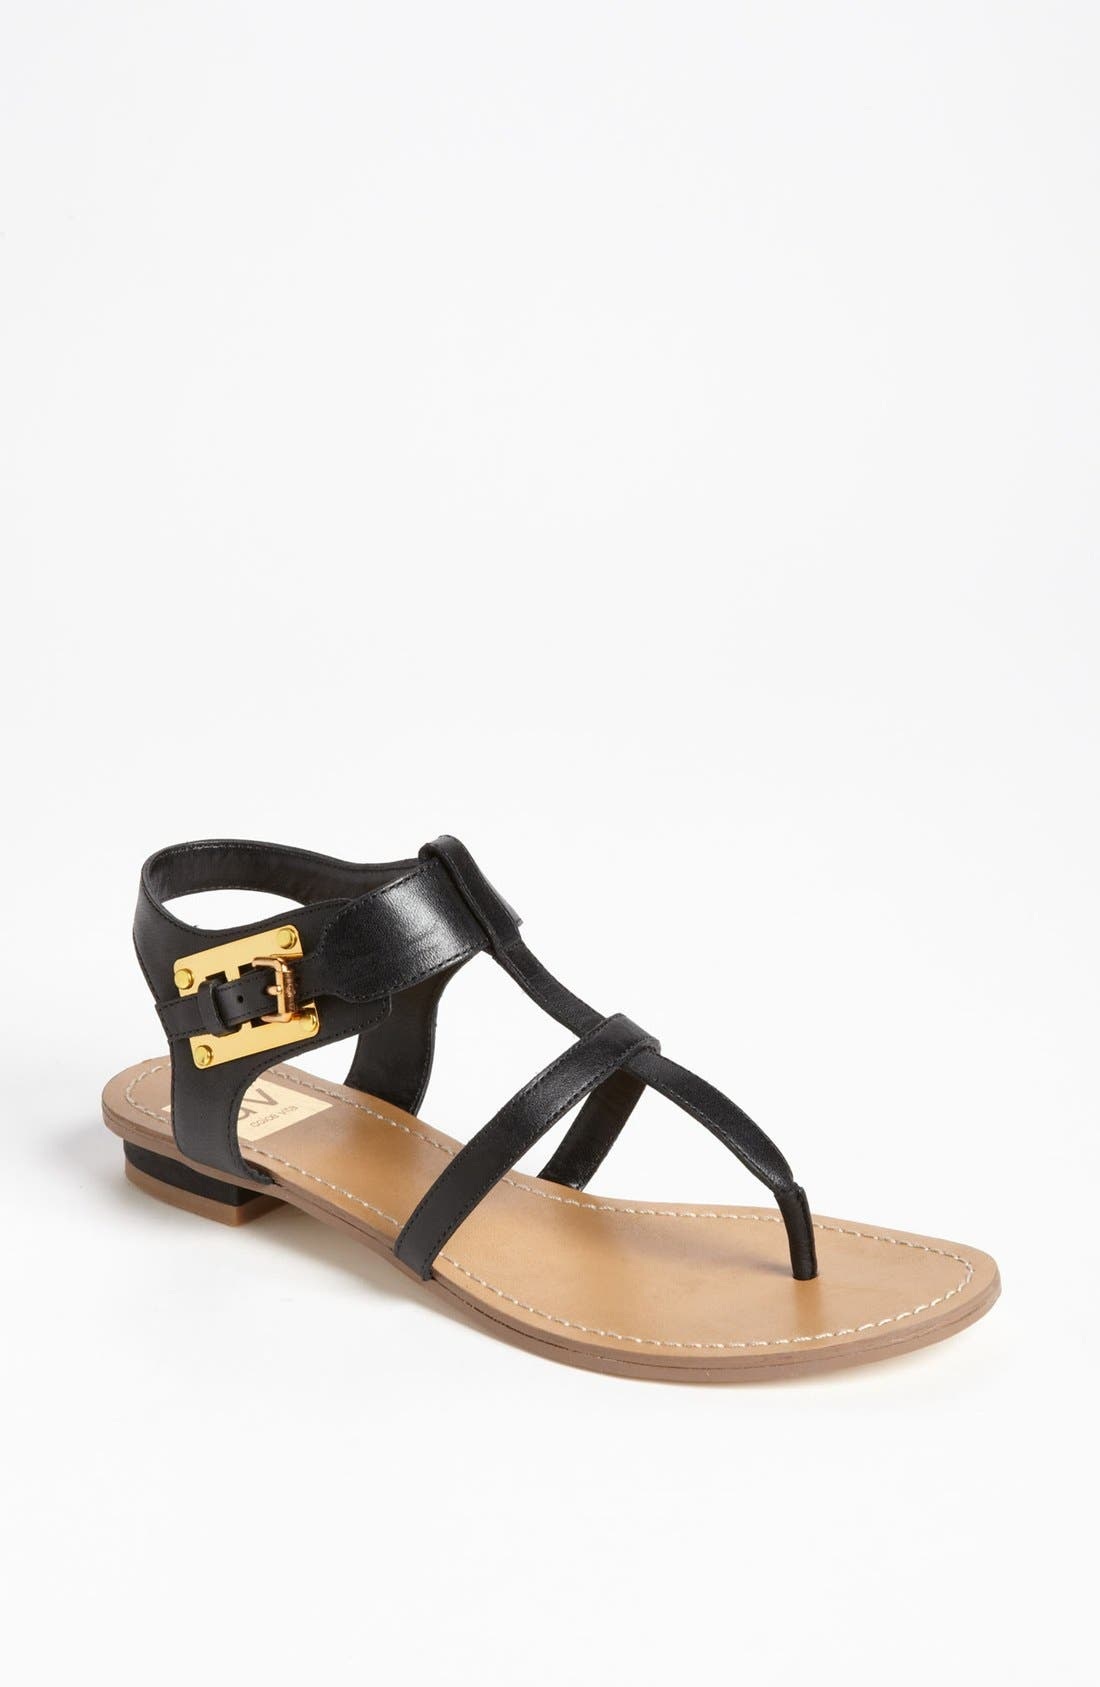 Alternate Image 1 Selected - DV by Dolce Vita 'Hani' Sandal (Nordstrom Exclusive)